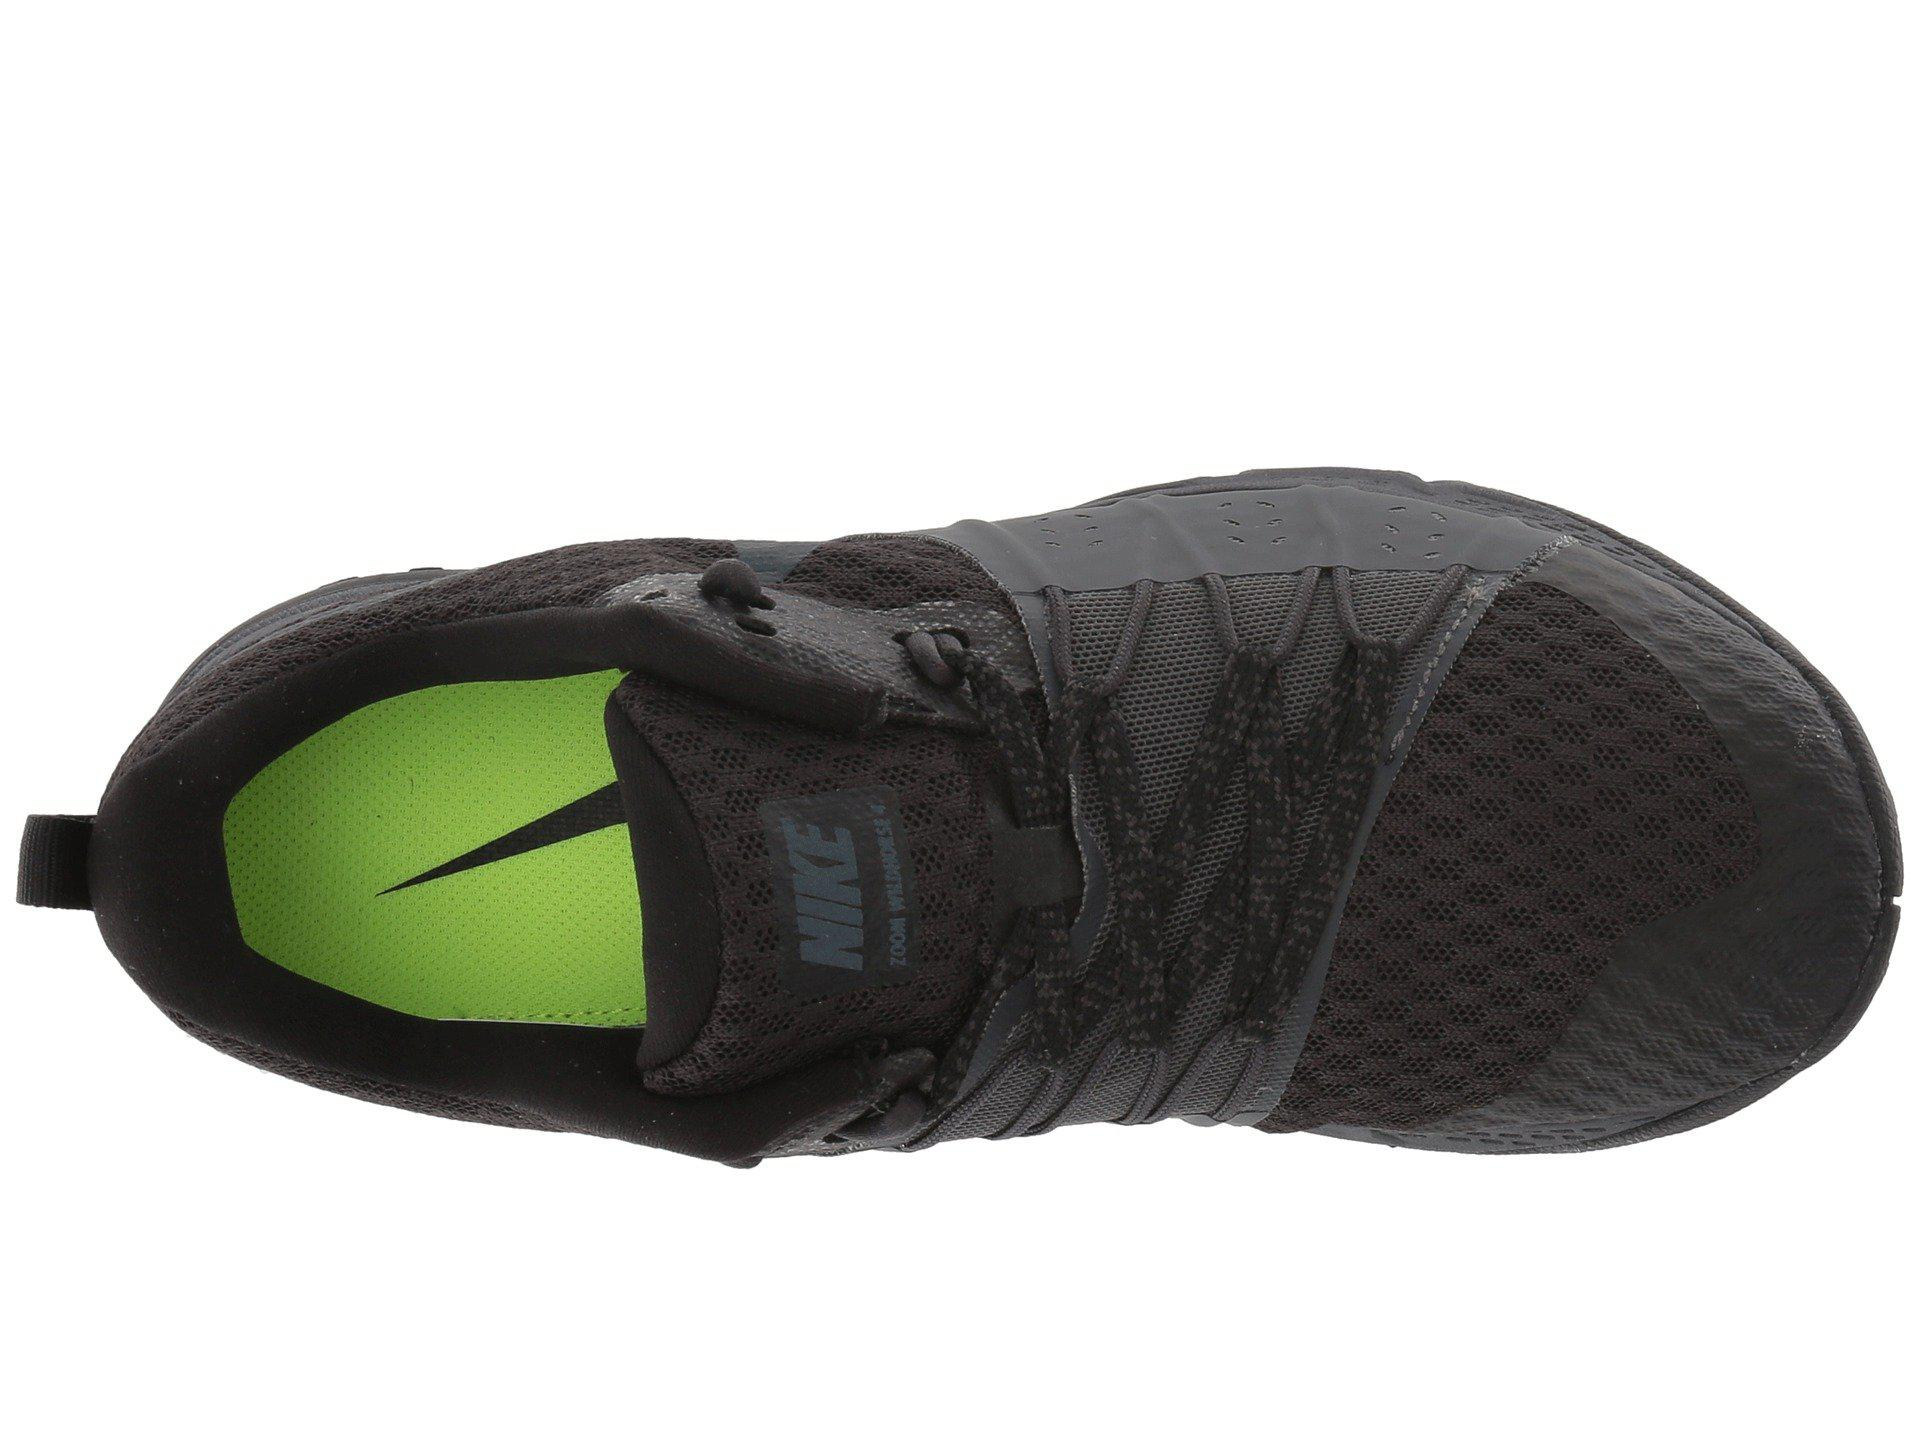 9c89e01ccd6 Nike - Air Zoom Wildhorse 4 (black anthracite anthracite) Women s Running  Shoes. View fullscreen